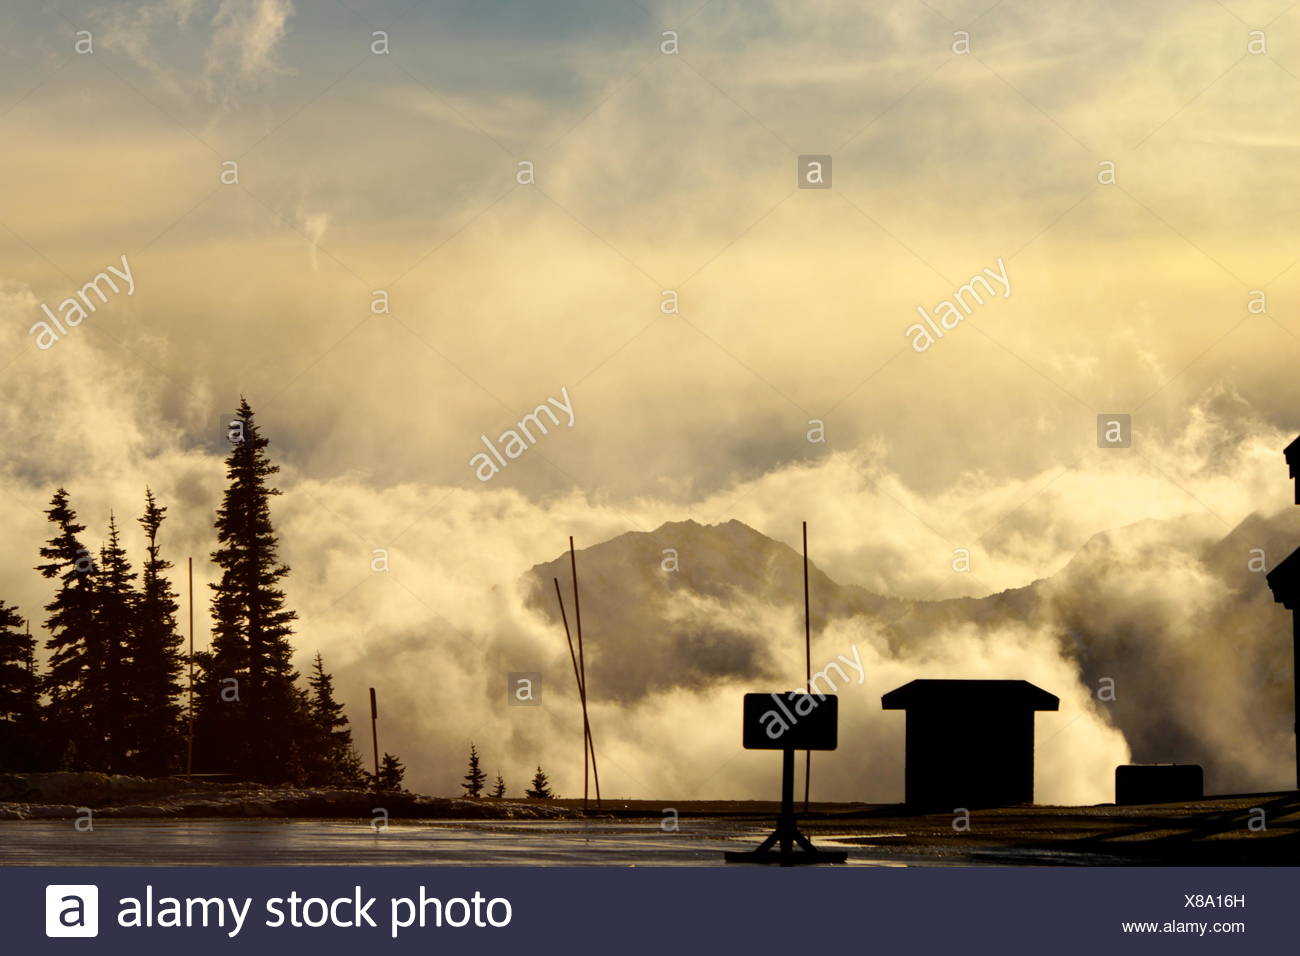 Surface Level Of Trees Against Cloudy Sky - Stock Image